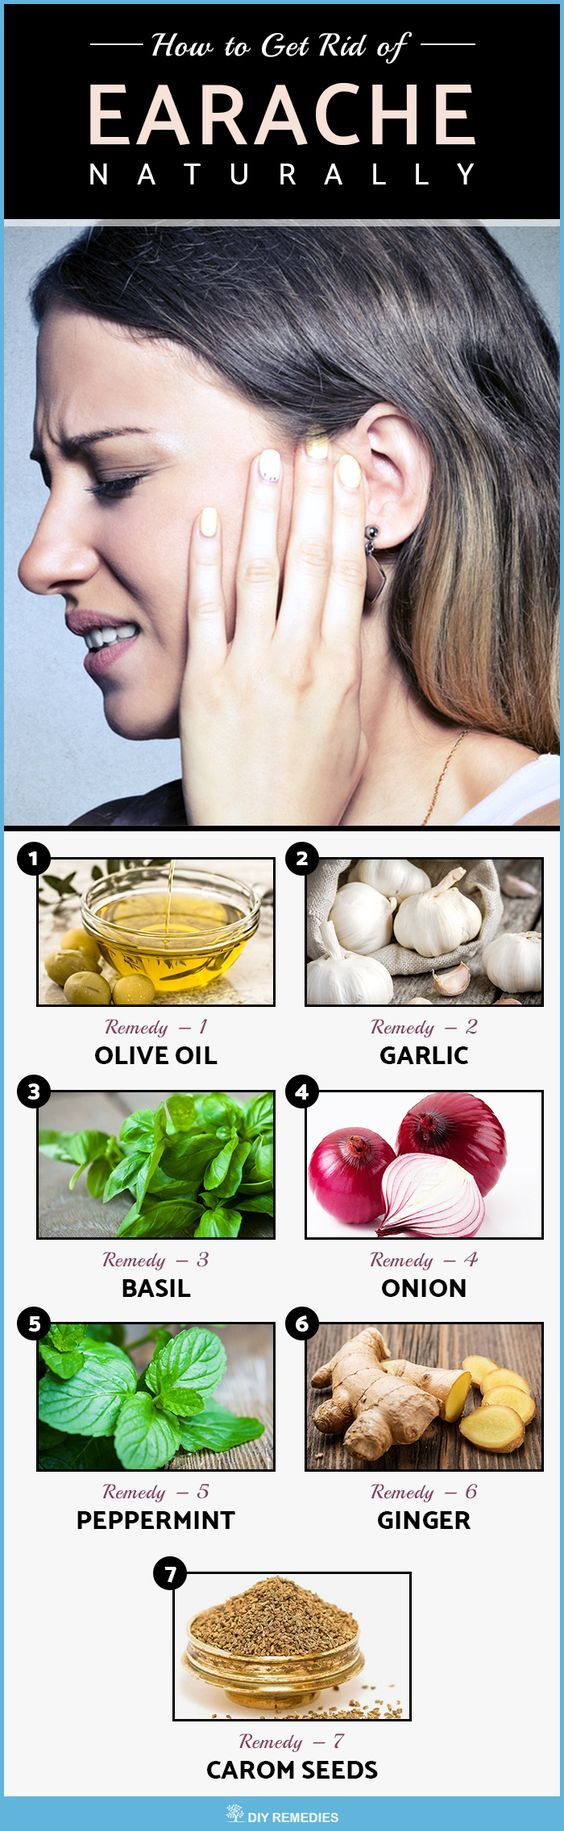 How to get rid of earache naturally remedies natural remedies and